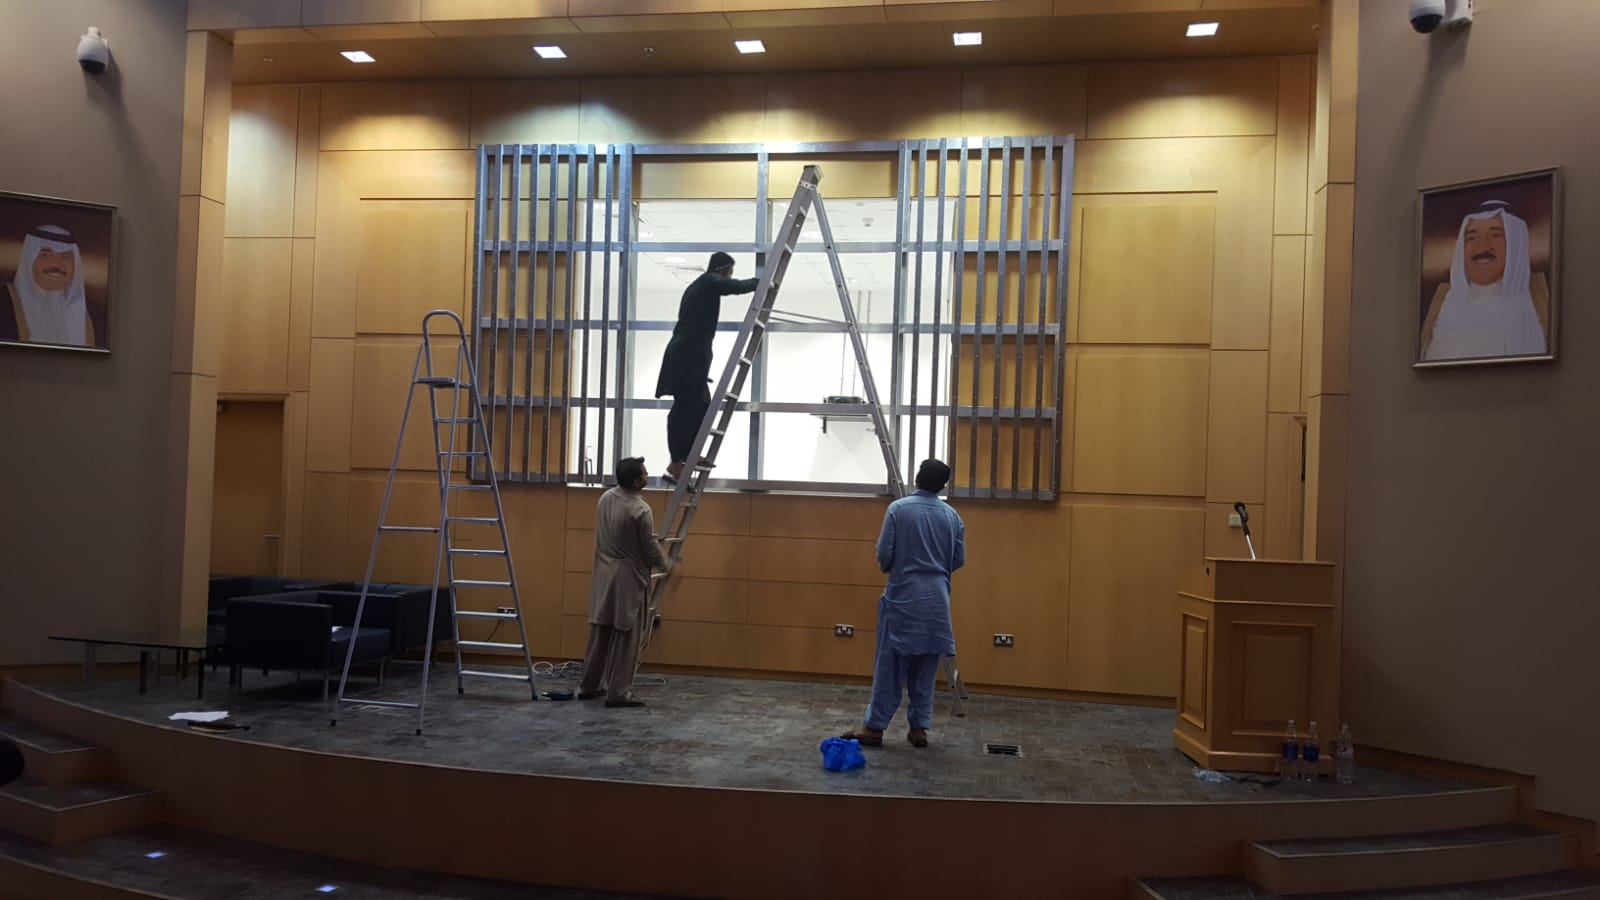 Building the frame structure of the LED screen